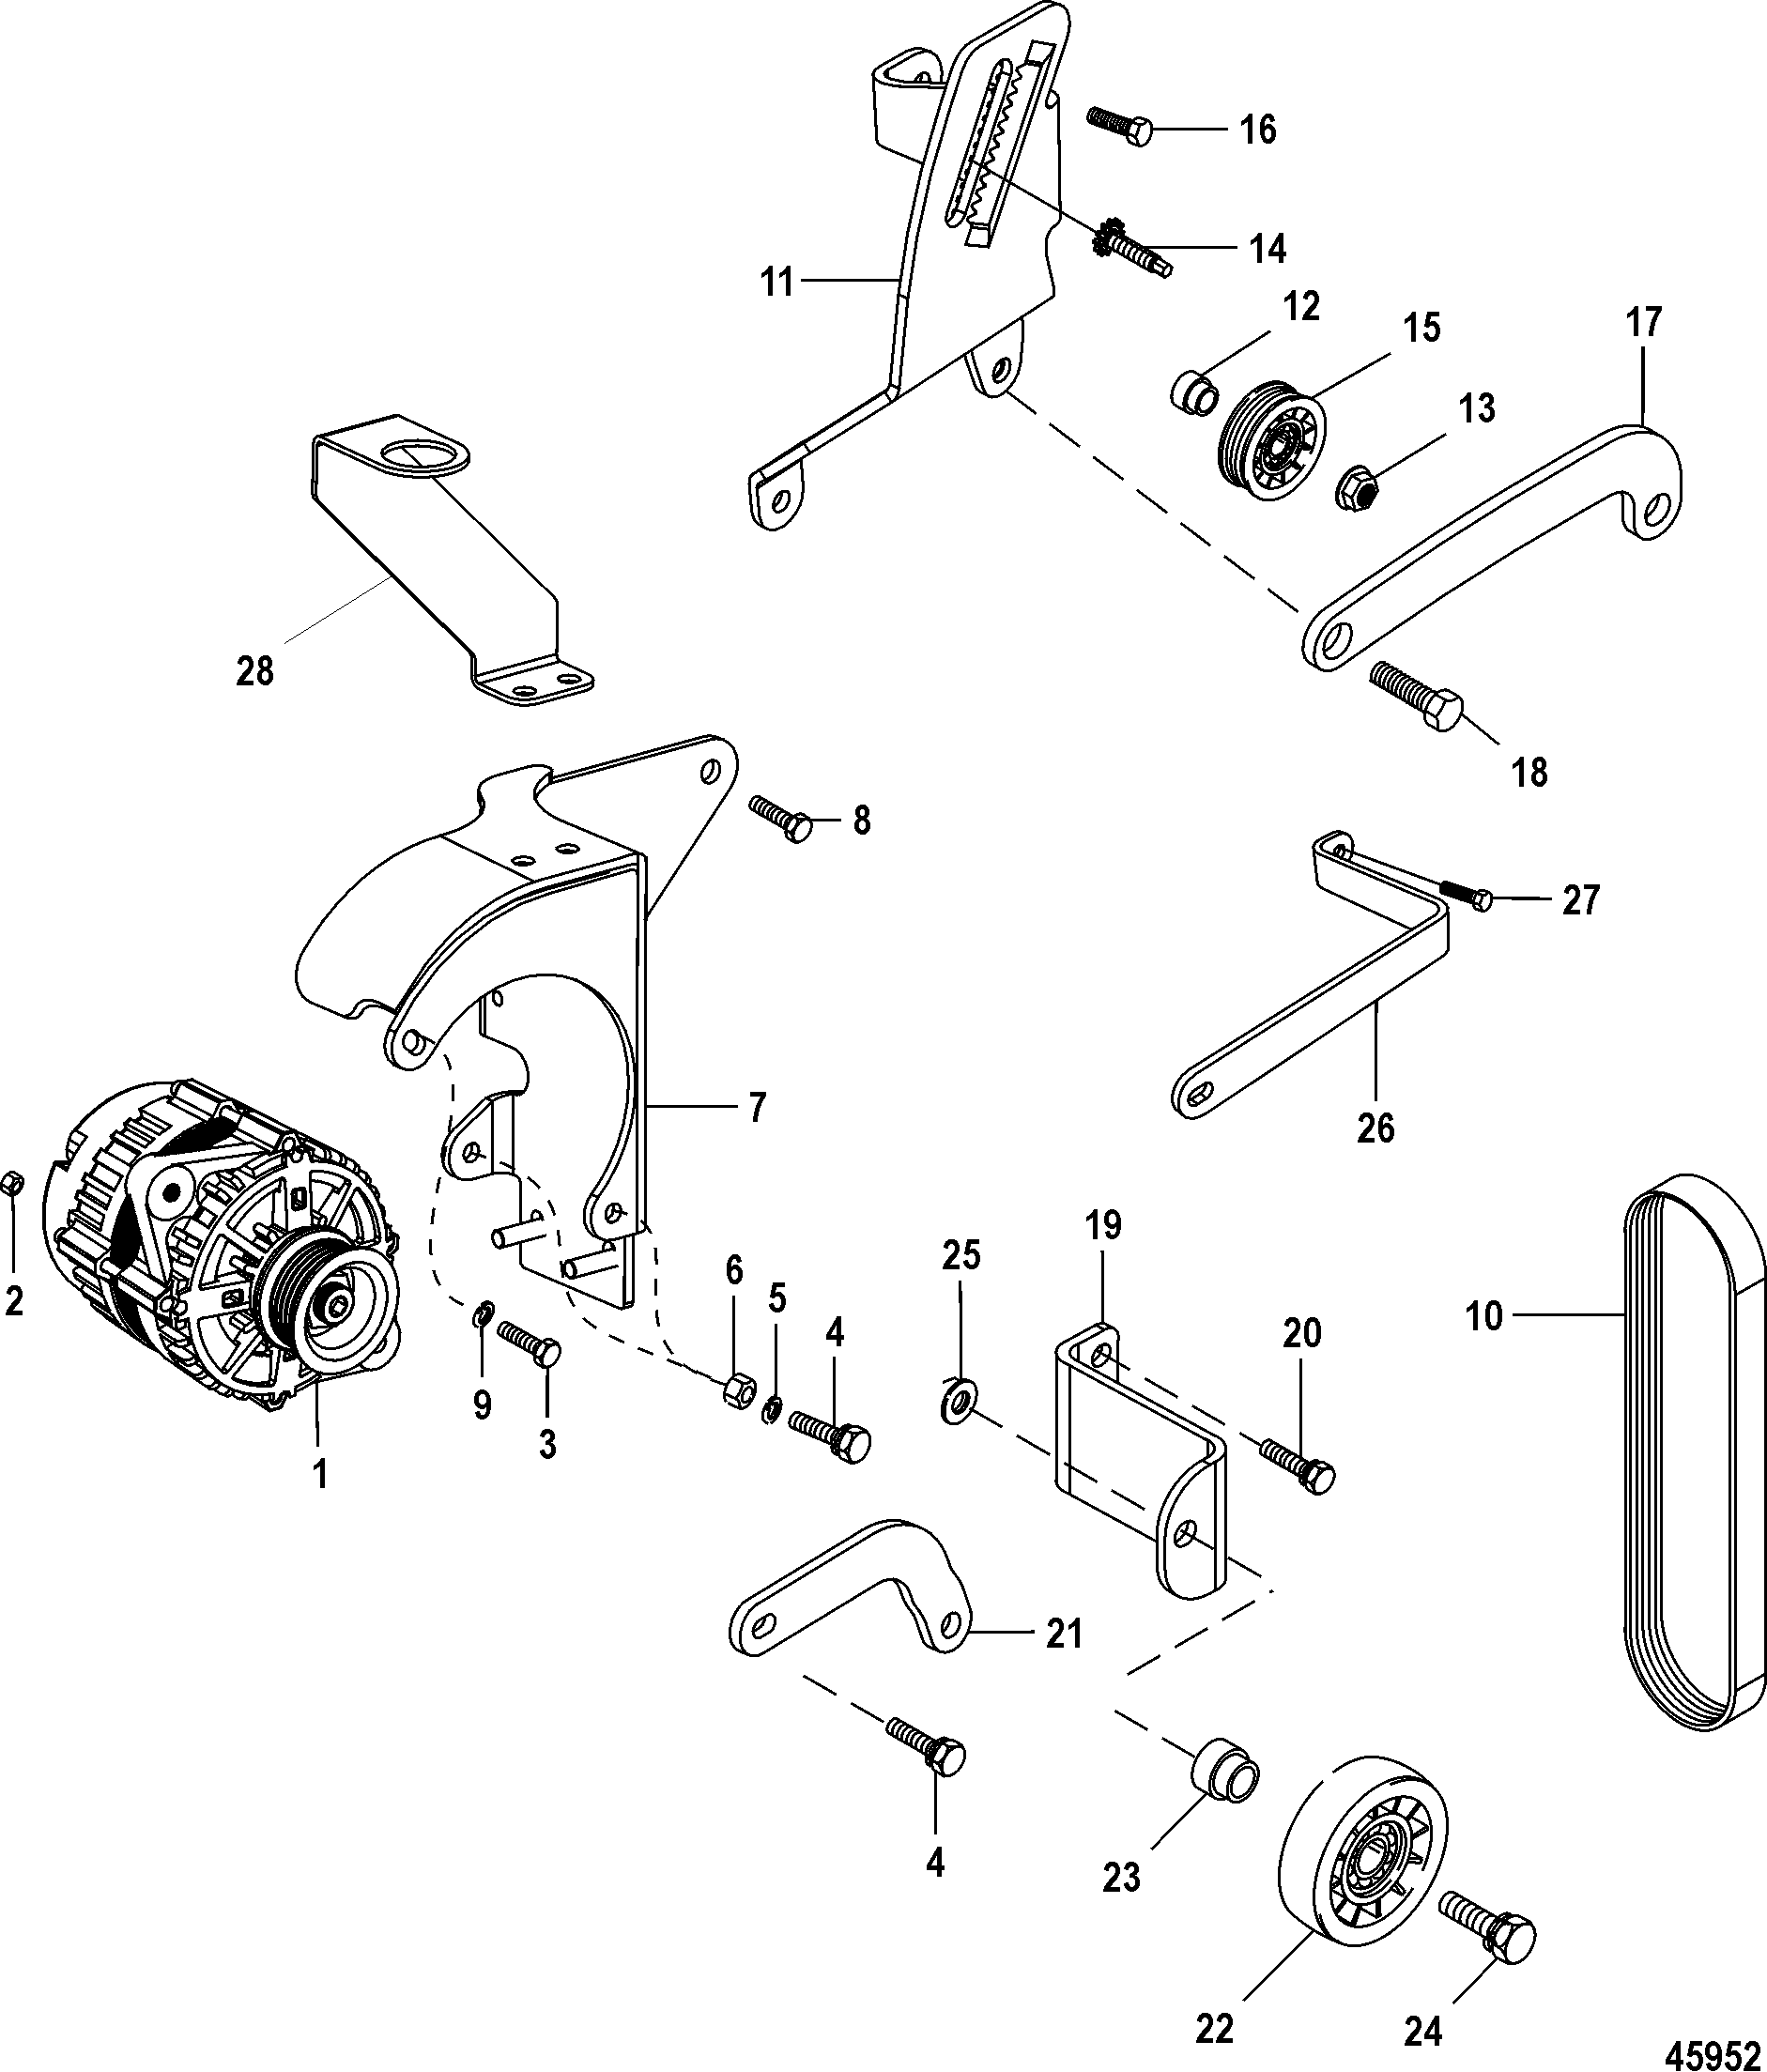 Alternator and Brackets FOR MERCRUISER 4.3L MPI ALPHA/BRAVO EC